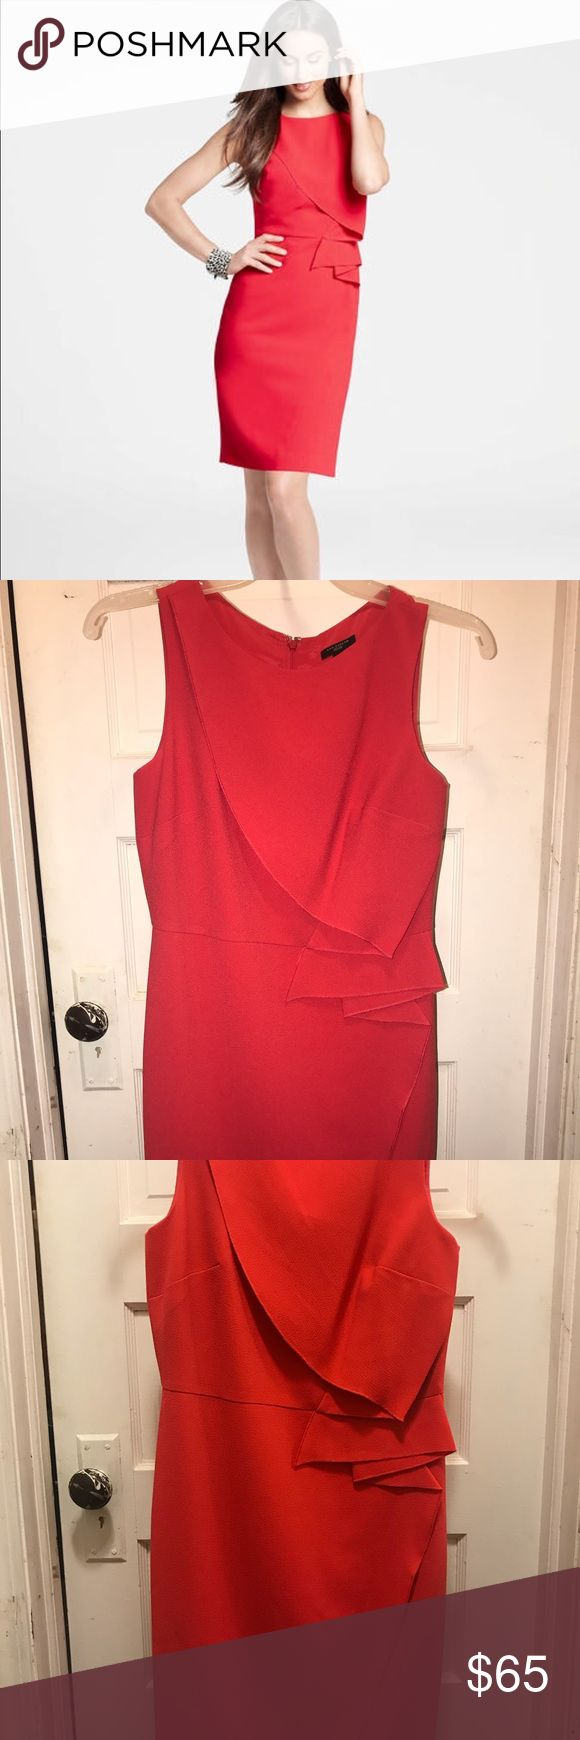 Ann Taylor petite crepe side drape sheath dress In great condition! Used once! Sold out online   Amazing dress to go out, weddings or special events Ann Taylor Dresses